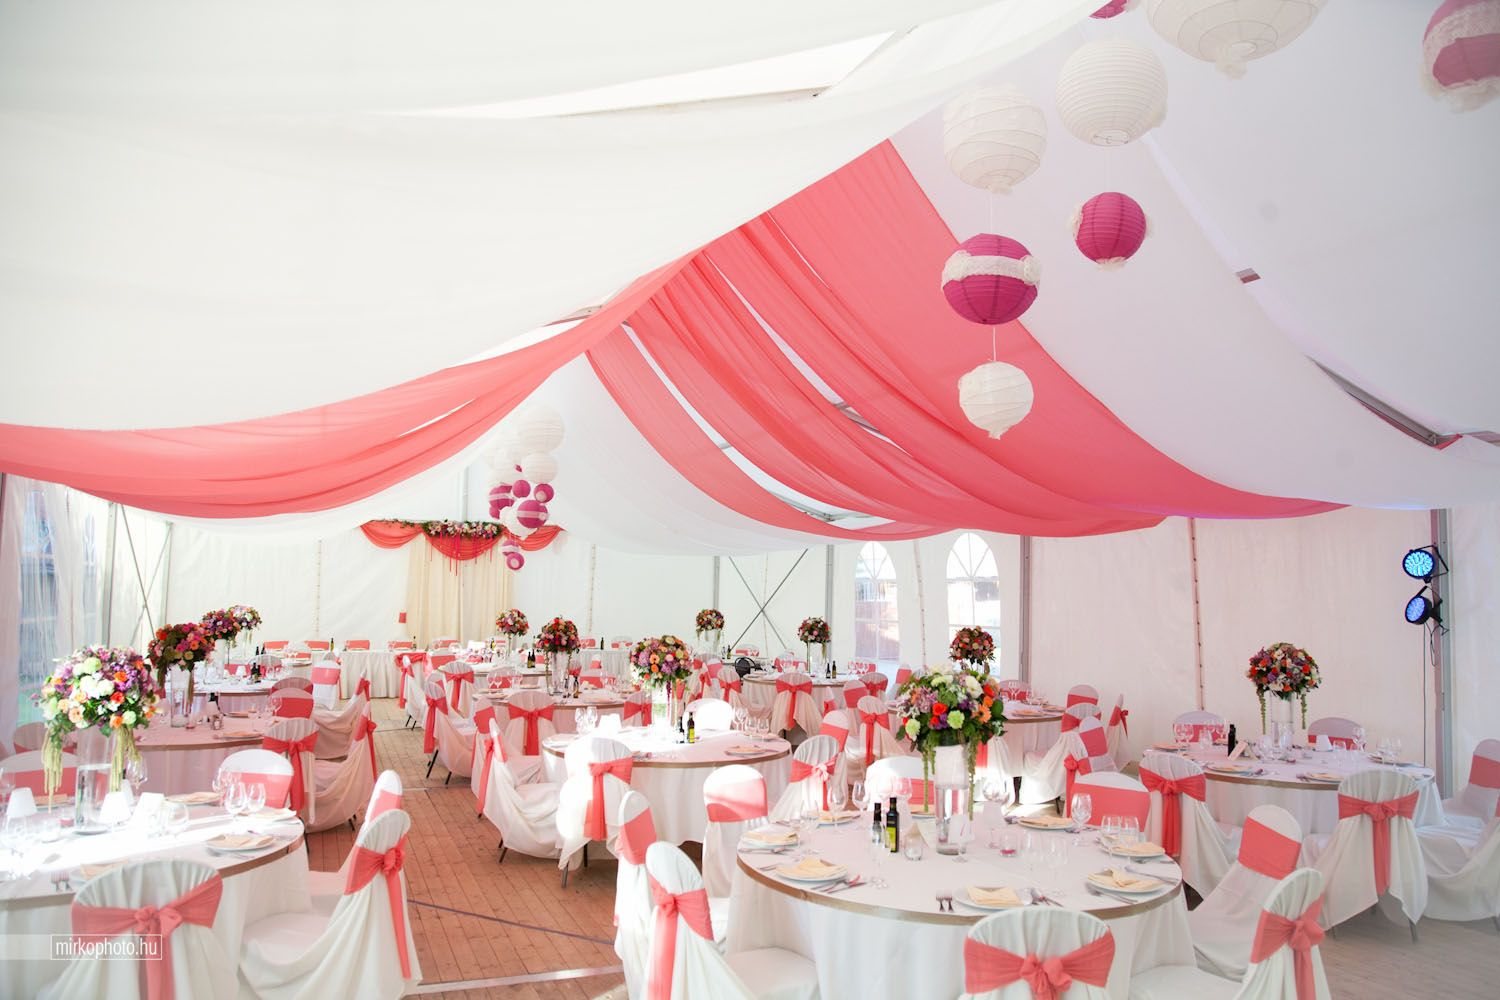 Wedding in a tent... newest colour desing coral-hotpink-strawberry ...